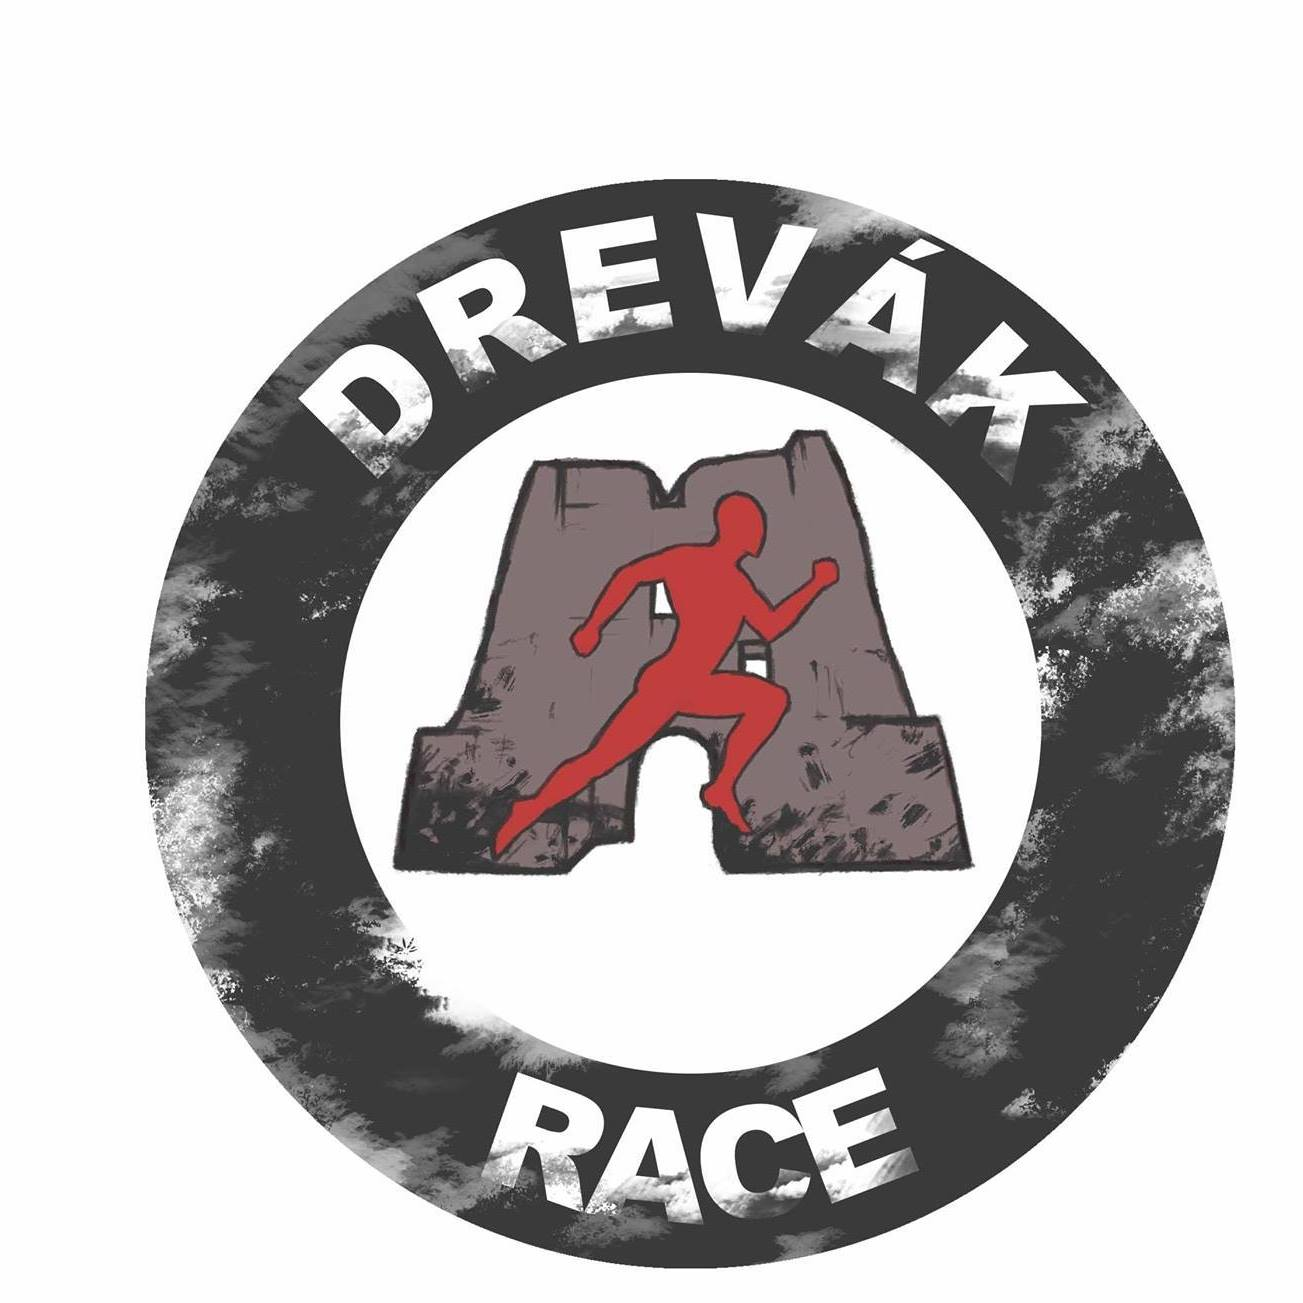 Drevak Race